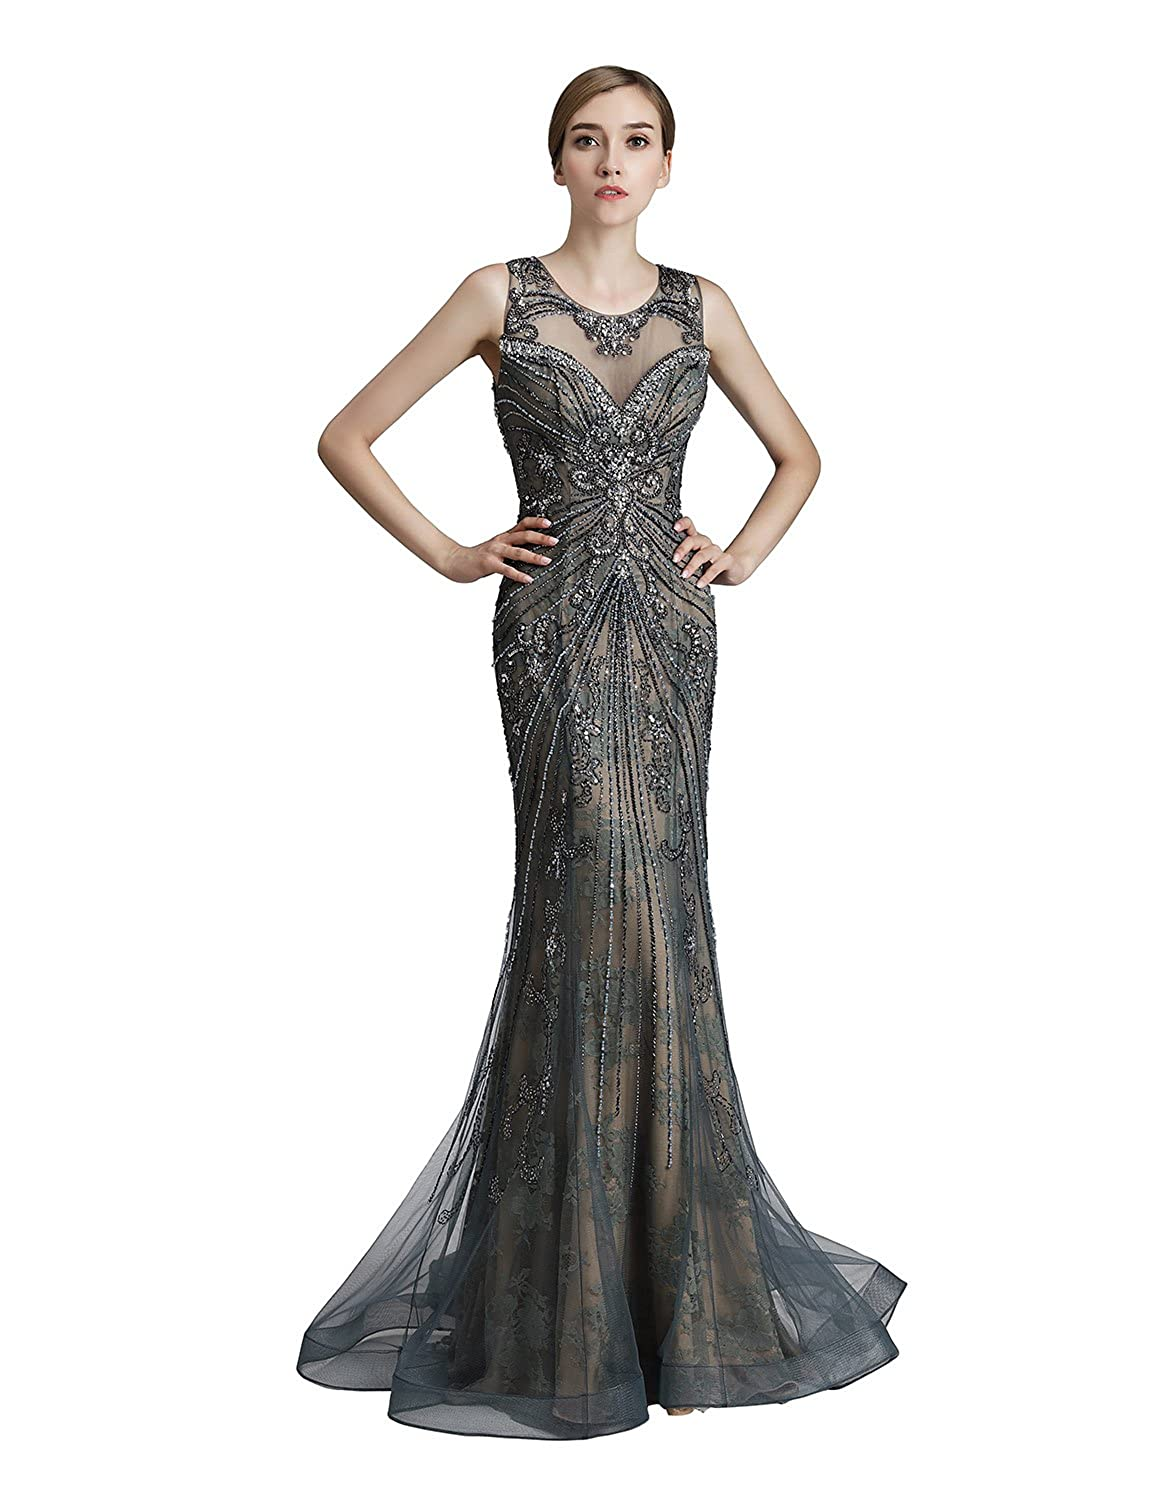 429steel Sarahbridal Womens Lace Prom Dresses Formal Evening Gown with Half Sleeve SD328